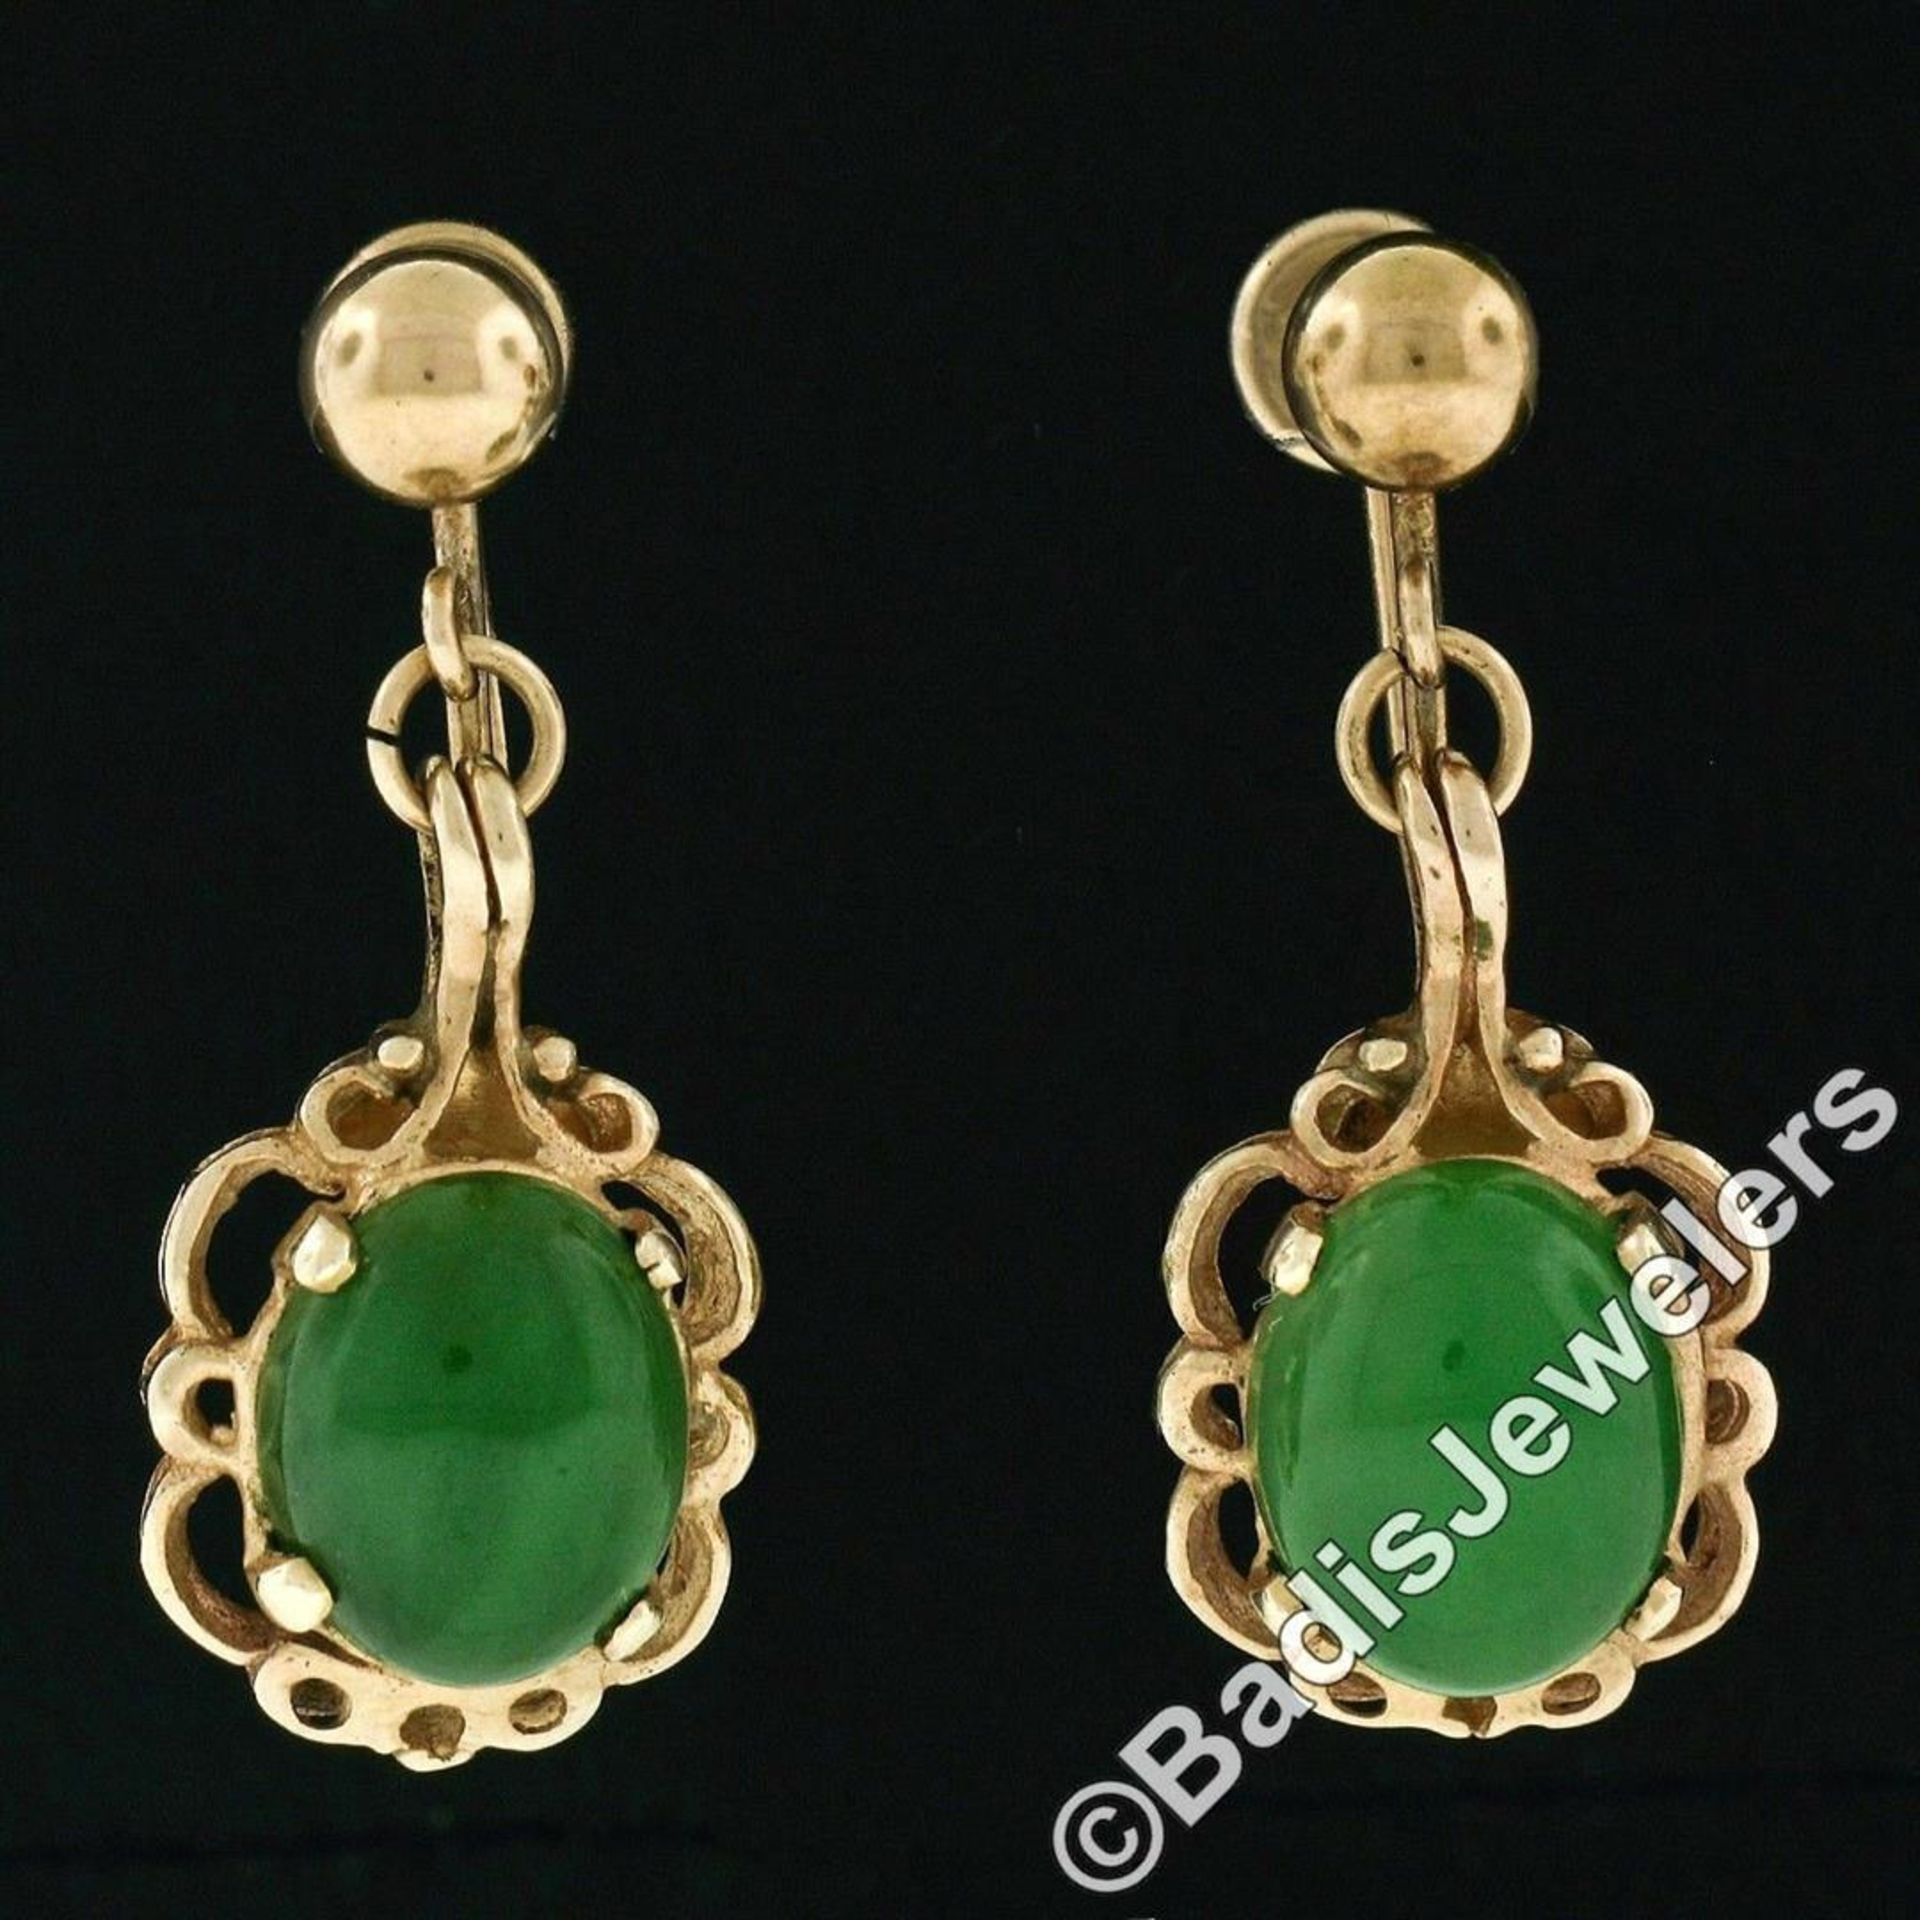 Vintage 14kt Yellow Gold Oval Green Jade Non Pierced Earrings - Image 2 of 6